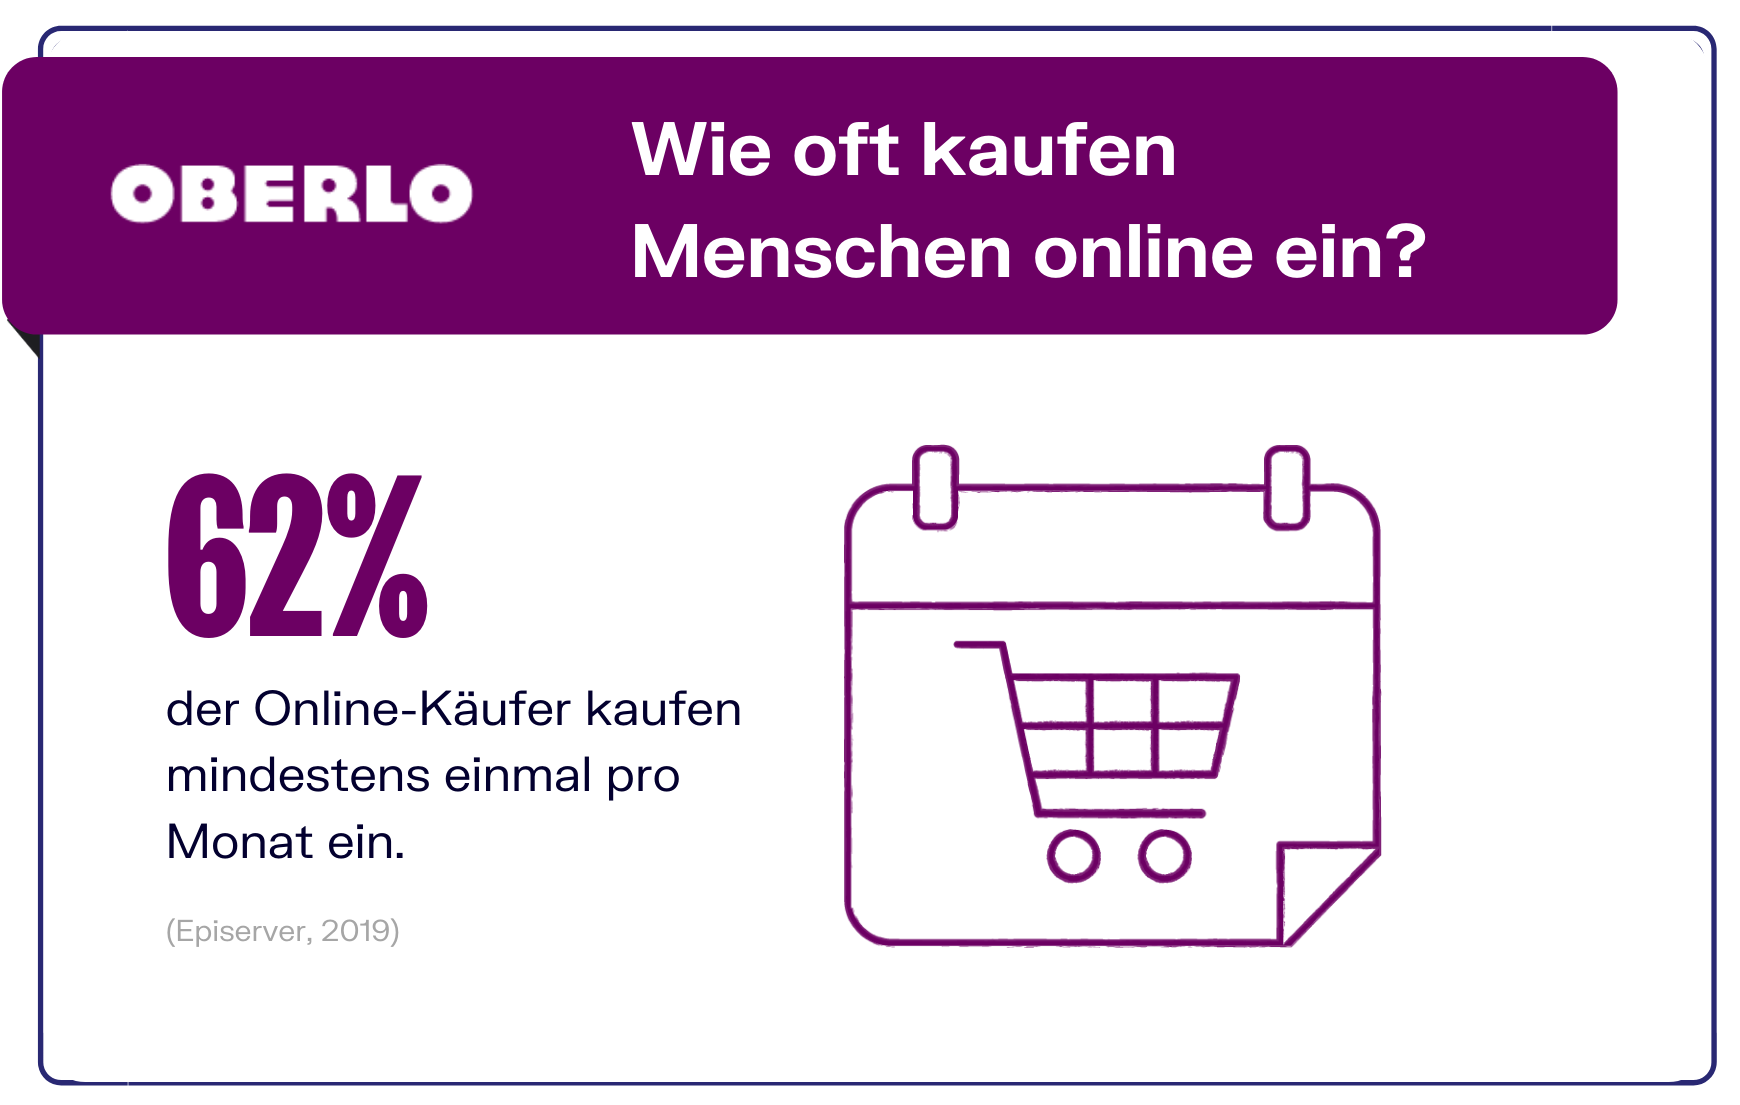 Online Shopping Statistik - Frequenz